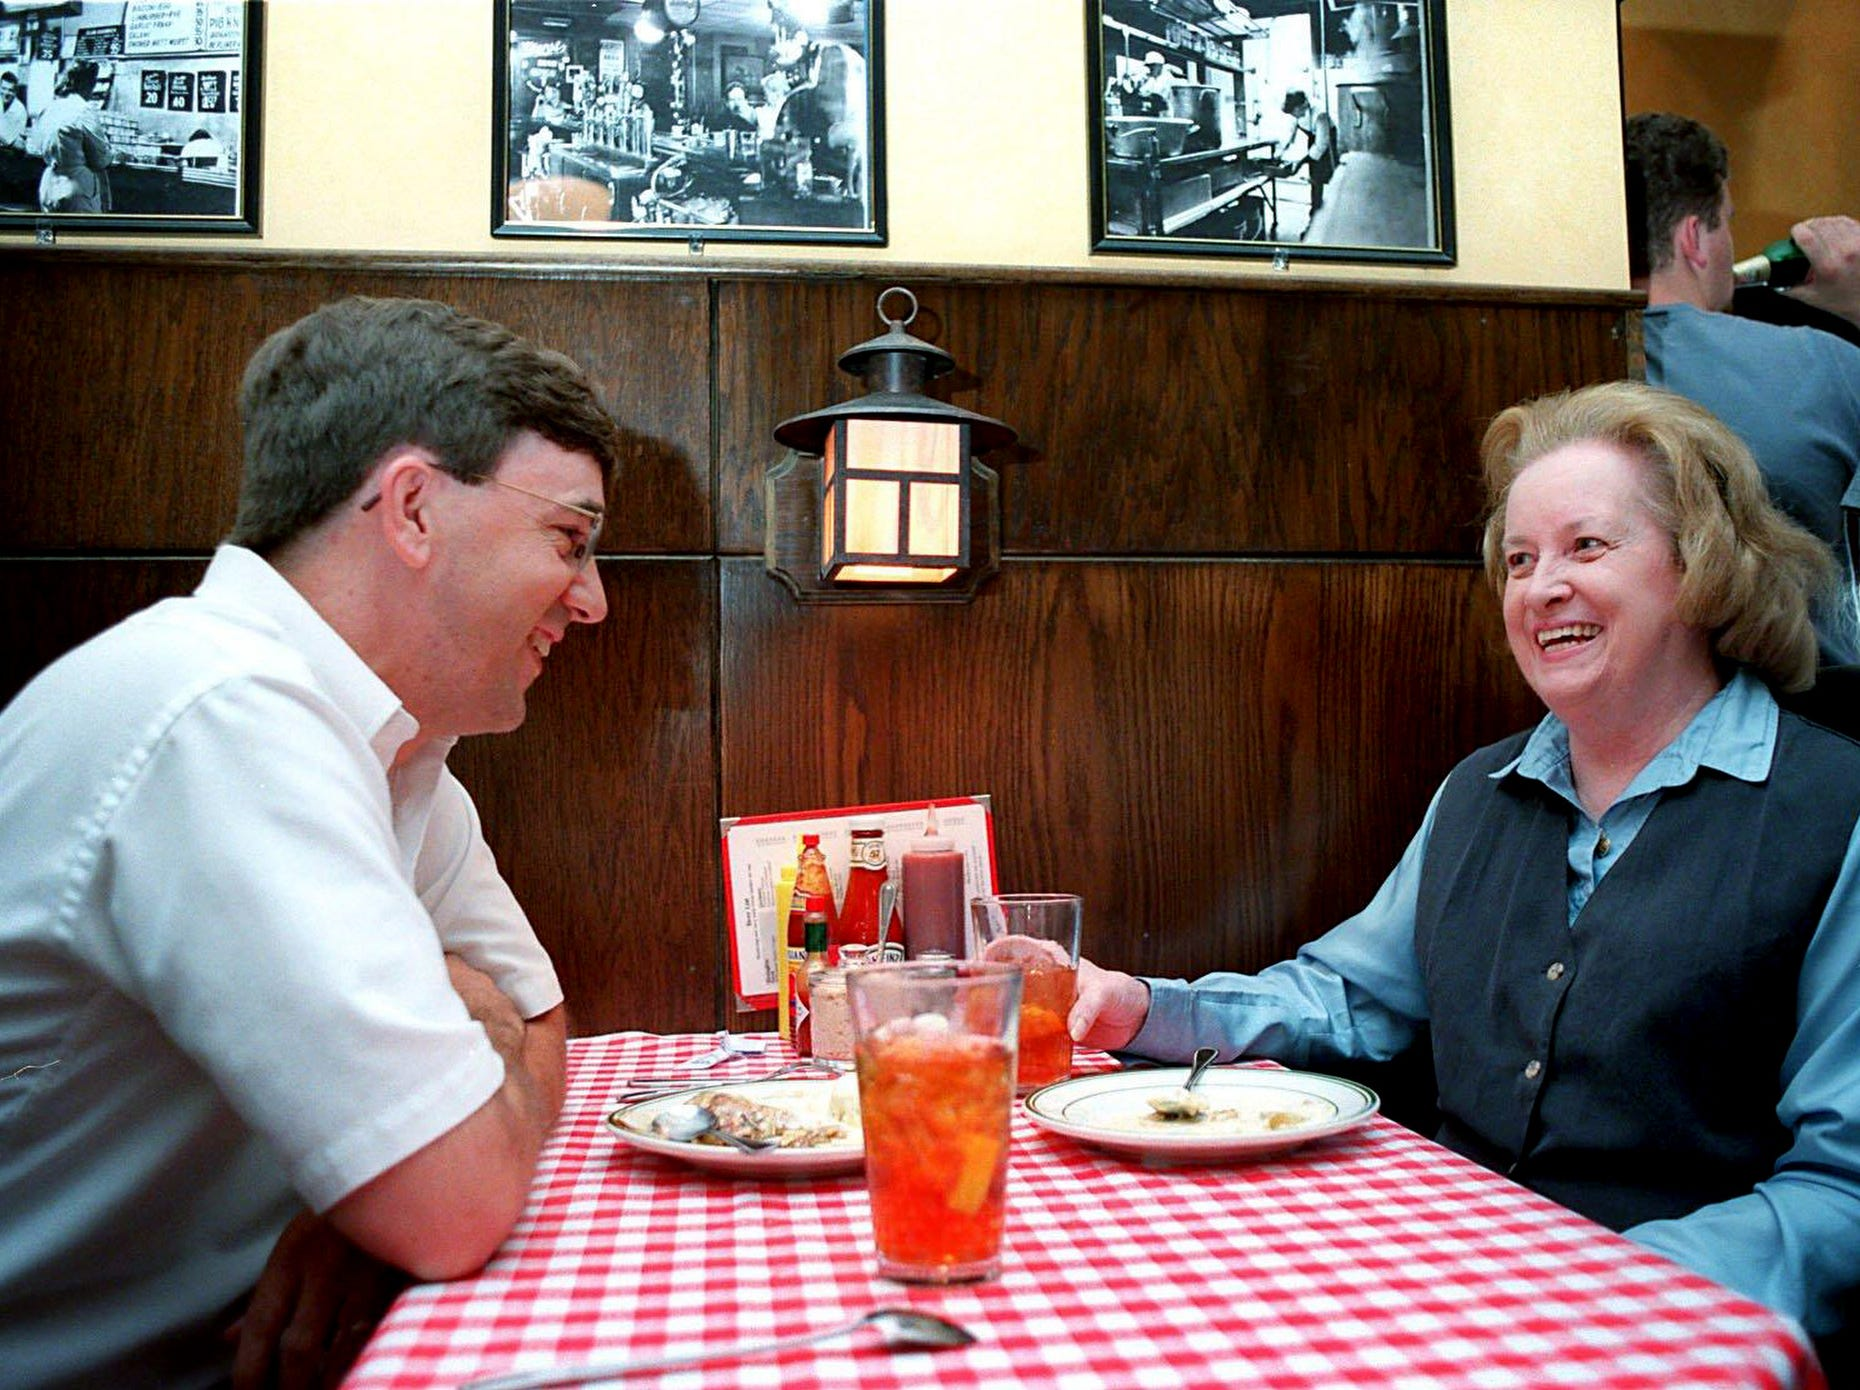 Terry Hundley and Audrey Brown talk over dessert as they enjoy their meal at the Gerst Haus Restaurant Aug. 18, 2000.